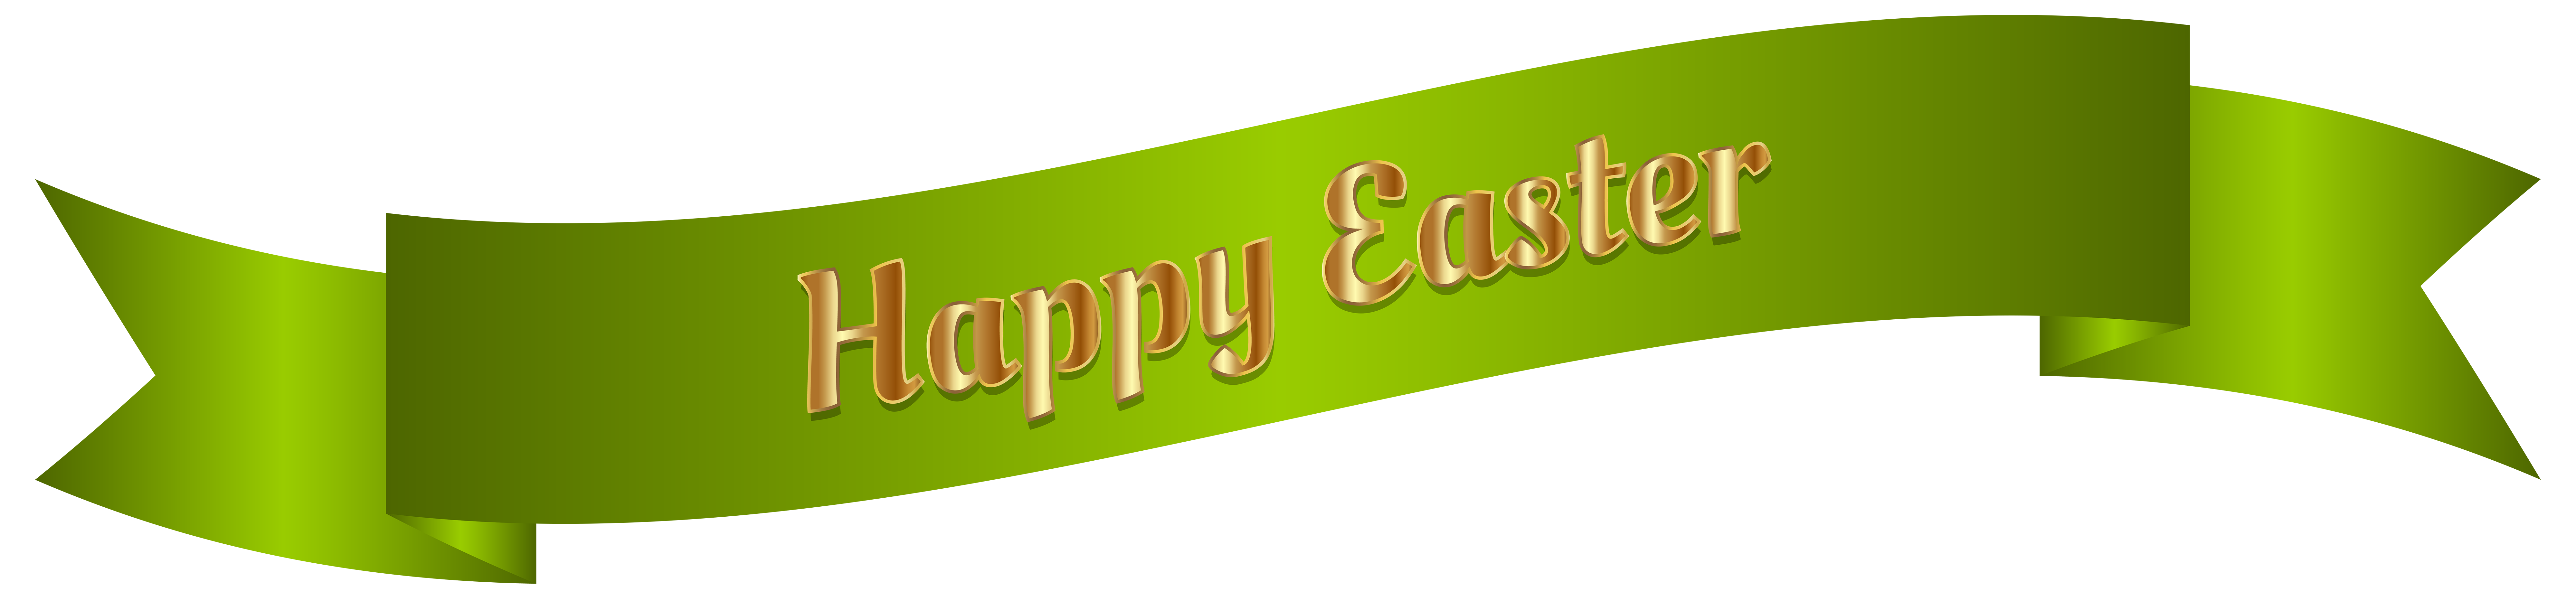 Green happy easter png. Clipart banner sign